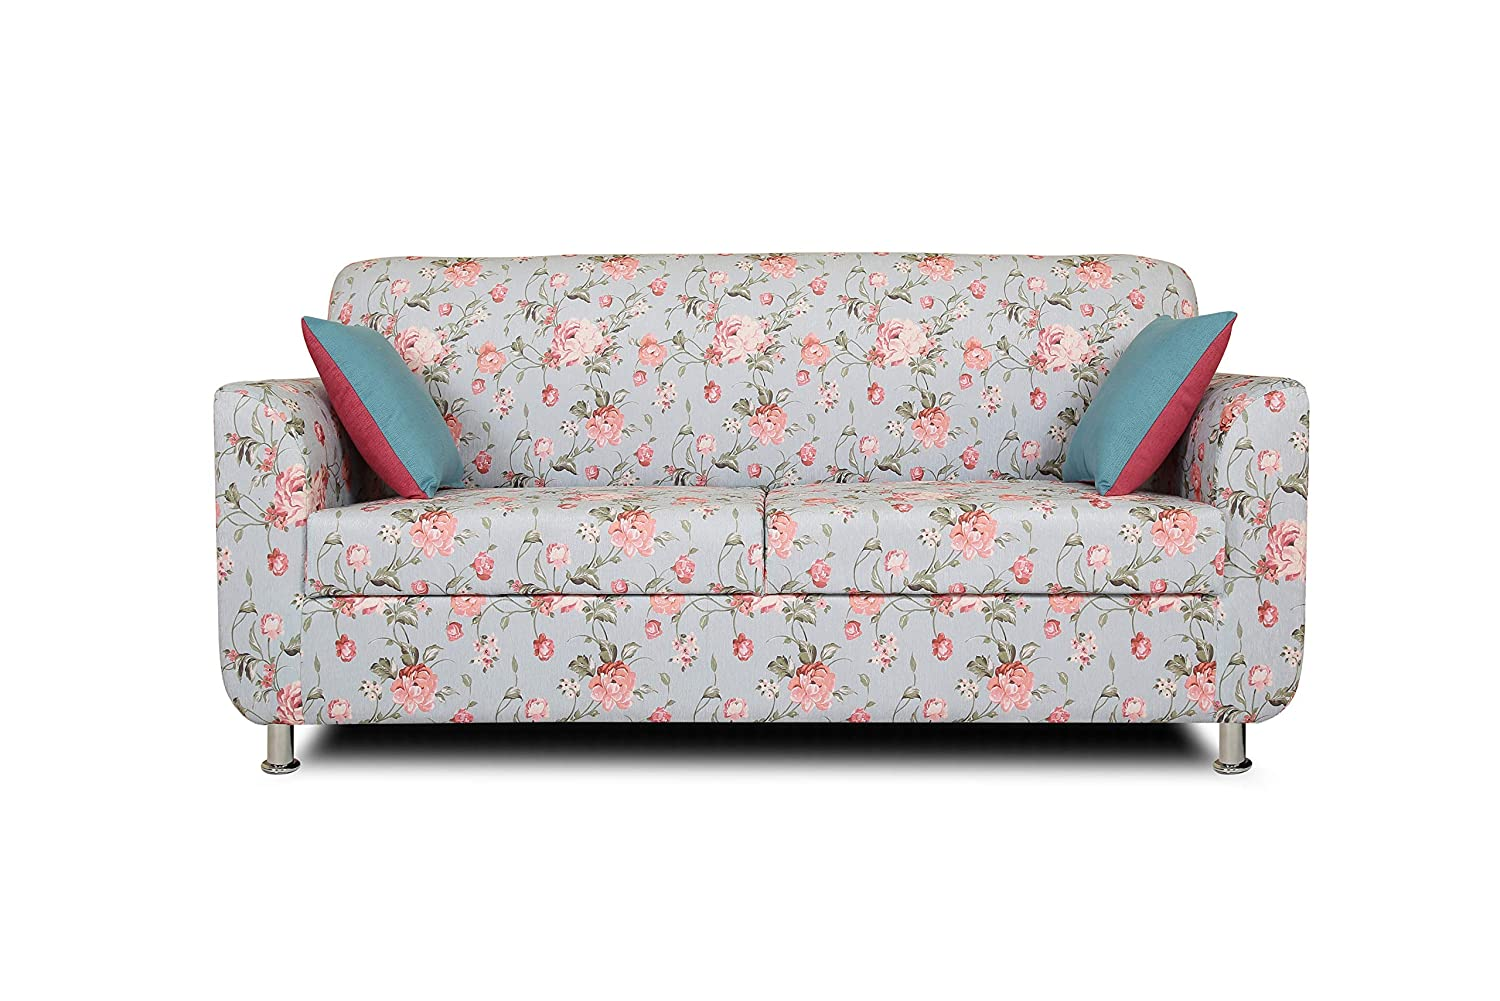 Adorn India Roselyn 2 Seater Sofa Digitel Print (Blue)